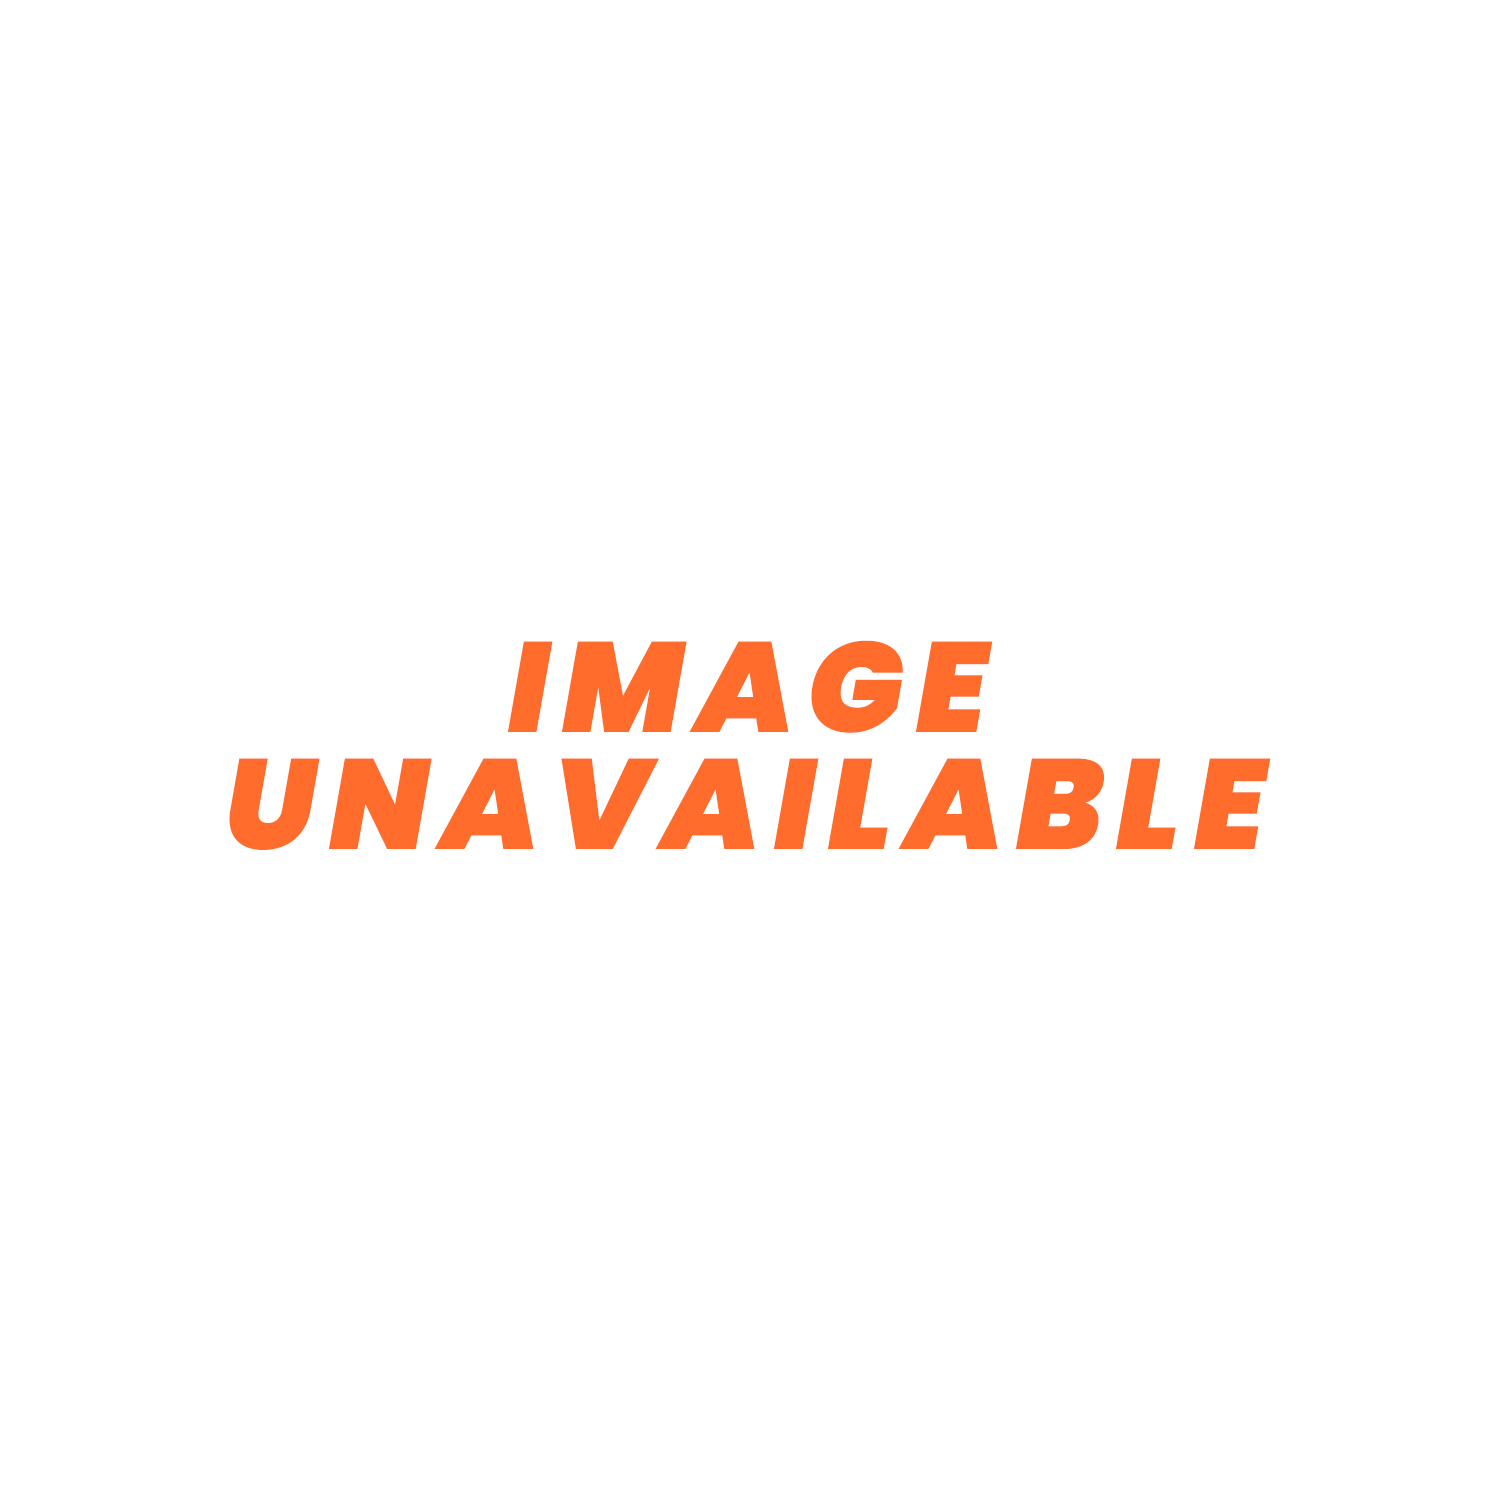 Clamp Battery Tray - 177 x 248 mm side